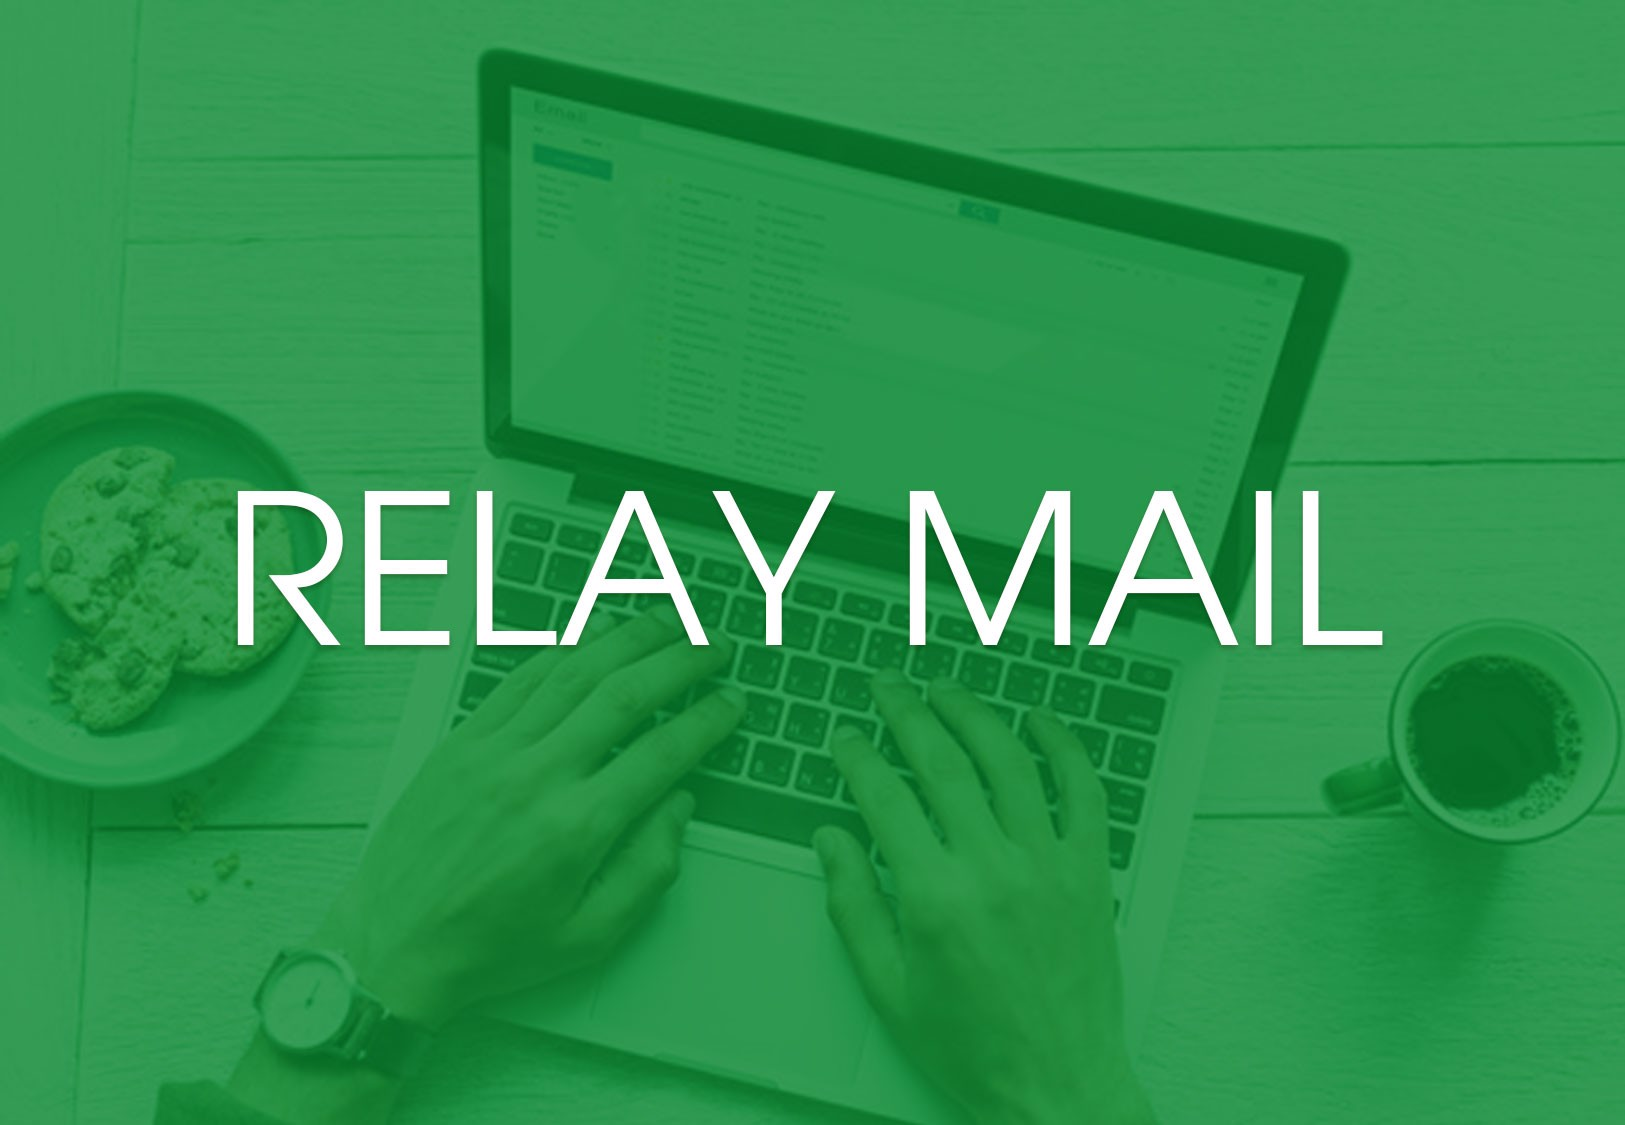 Relay Mail SMTP